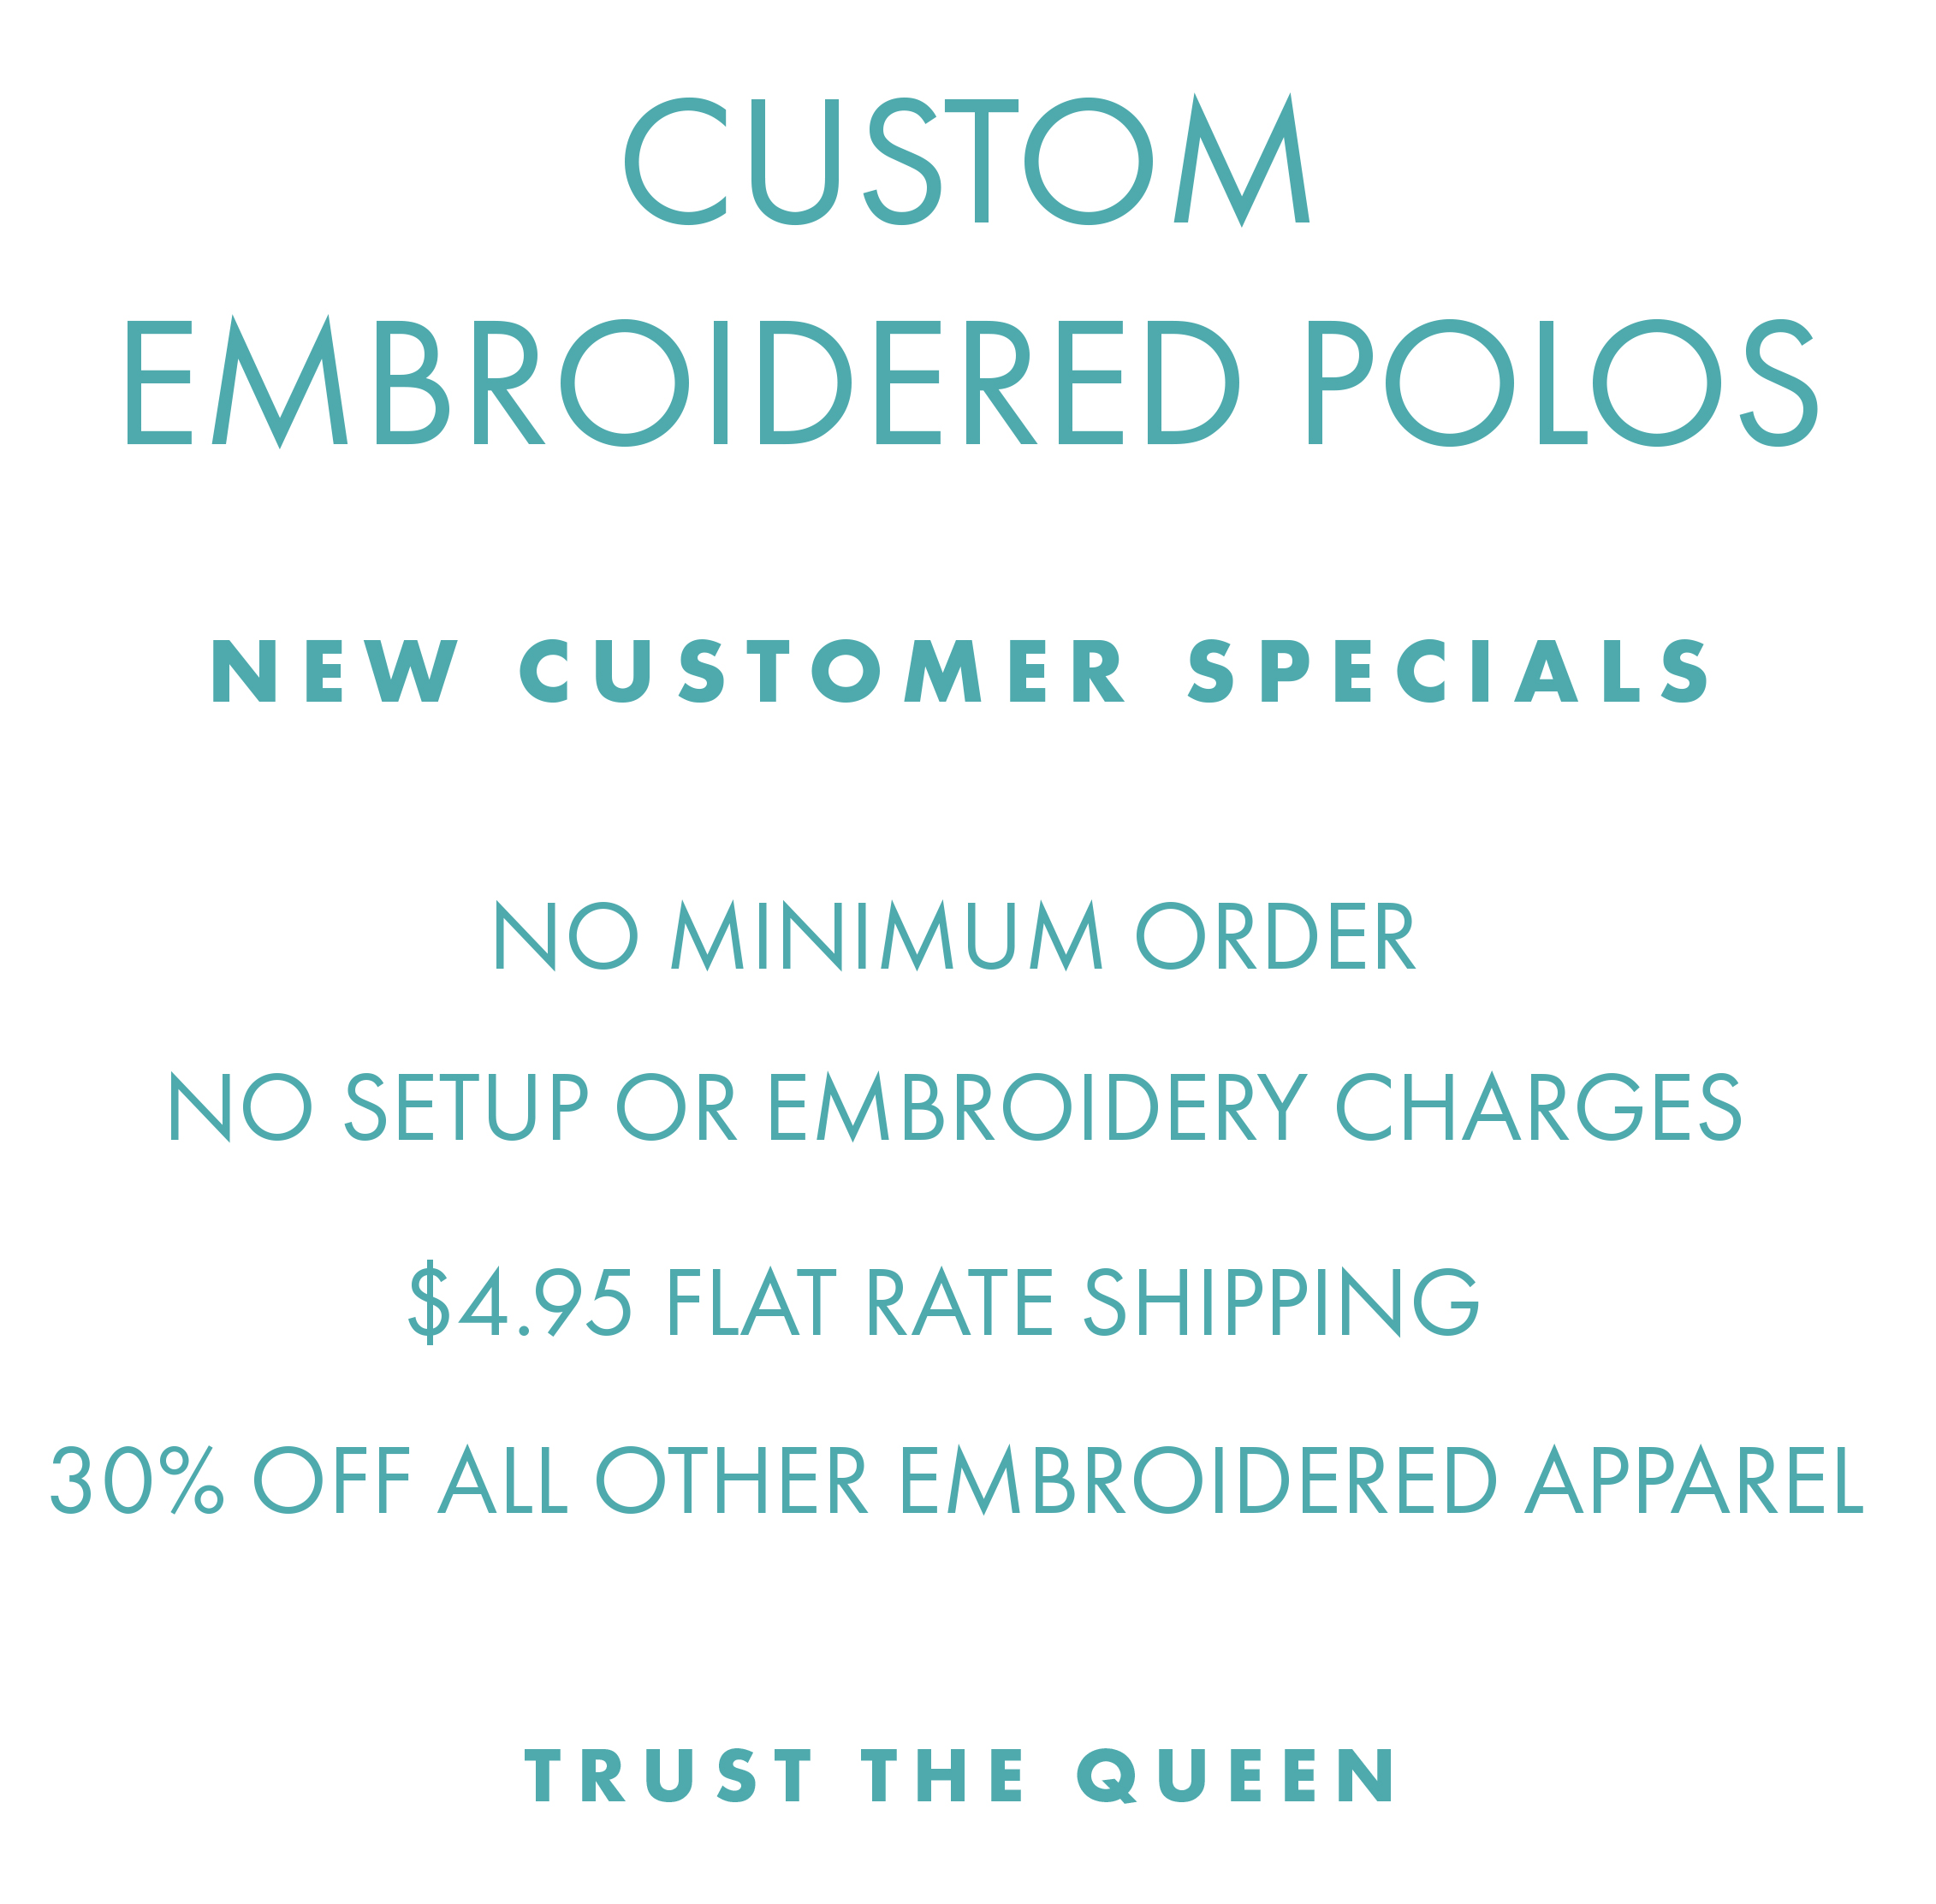 08d3dac2119 30% off Custom Embroidered Shirts   Polos - Queensboro